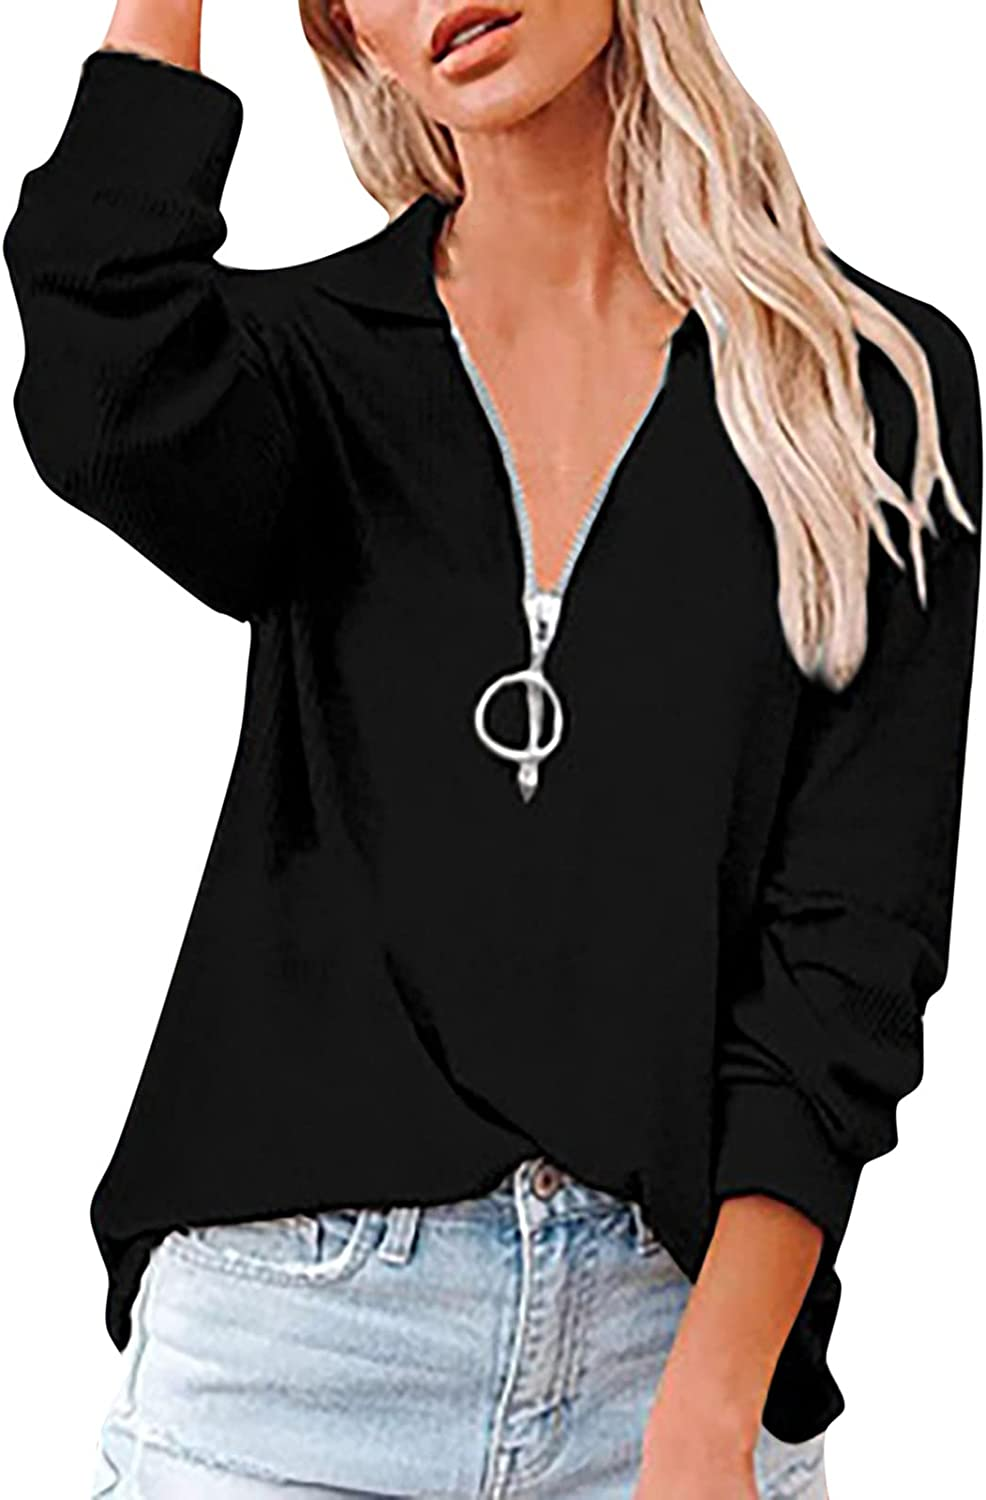 Pullover for Women 3/4 Zipper Up Long Sleeve V-Neck Solid Color Blouses Autumn Loose Ladies Fashion Simple Tops